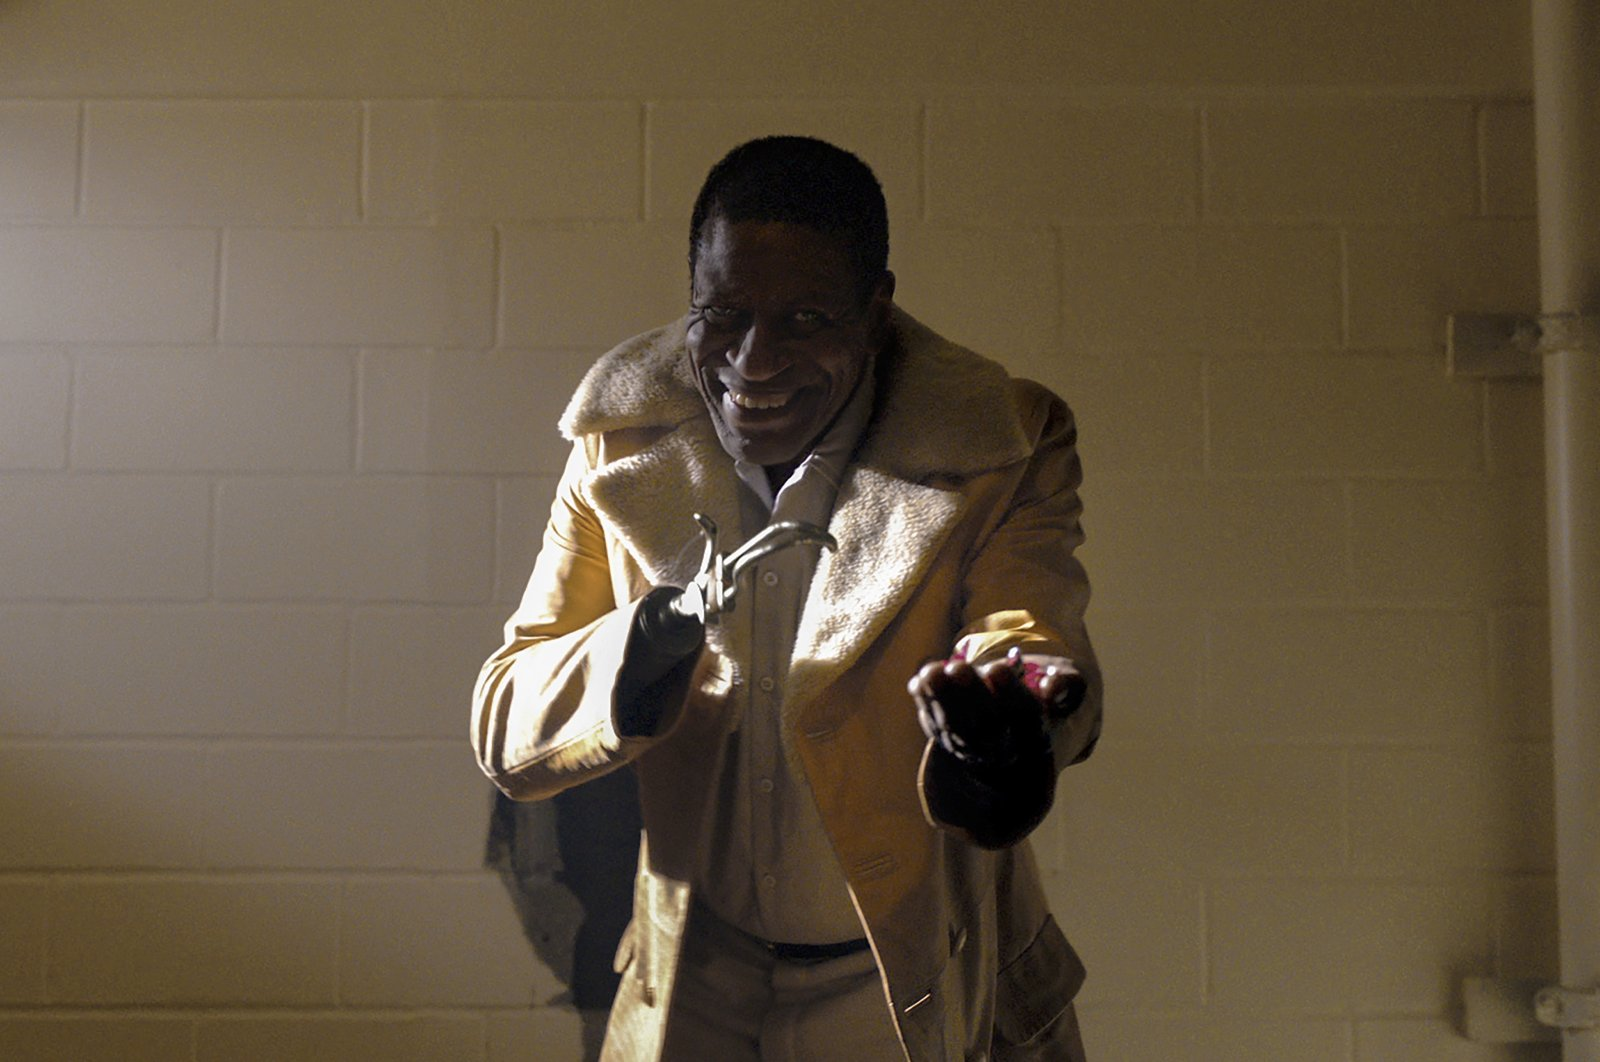 """Michael Hargrove as Sherman Fields gestures, in a scene from the film """"Candyman,"""" directed by Nia DaCosta. (Universal Pictures via AP)"""